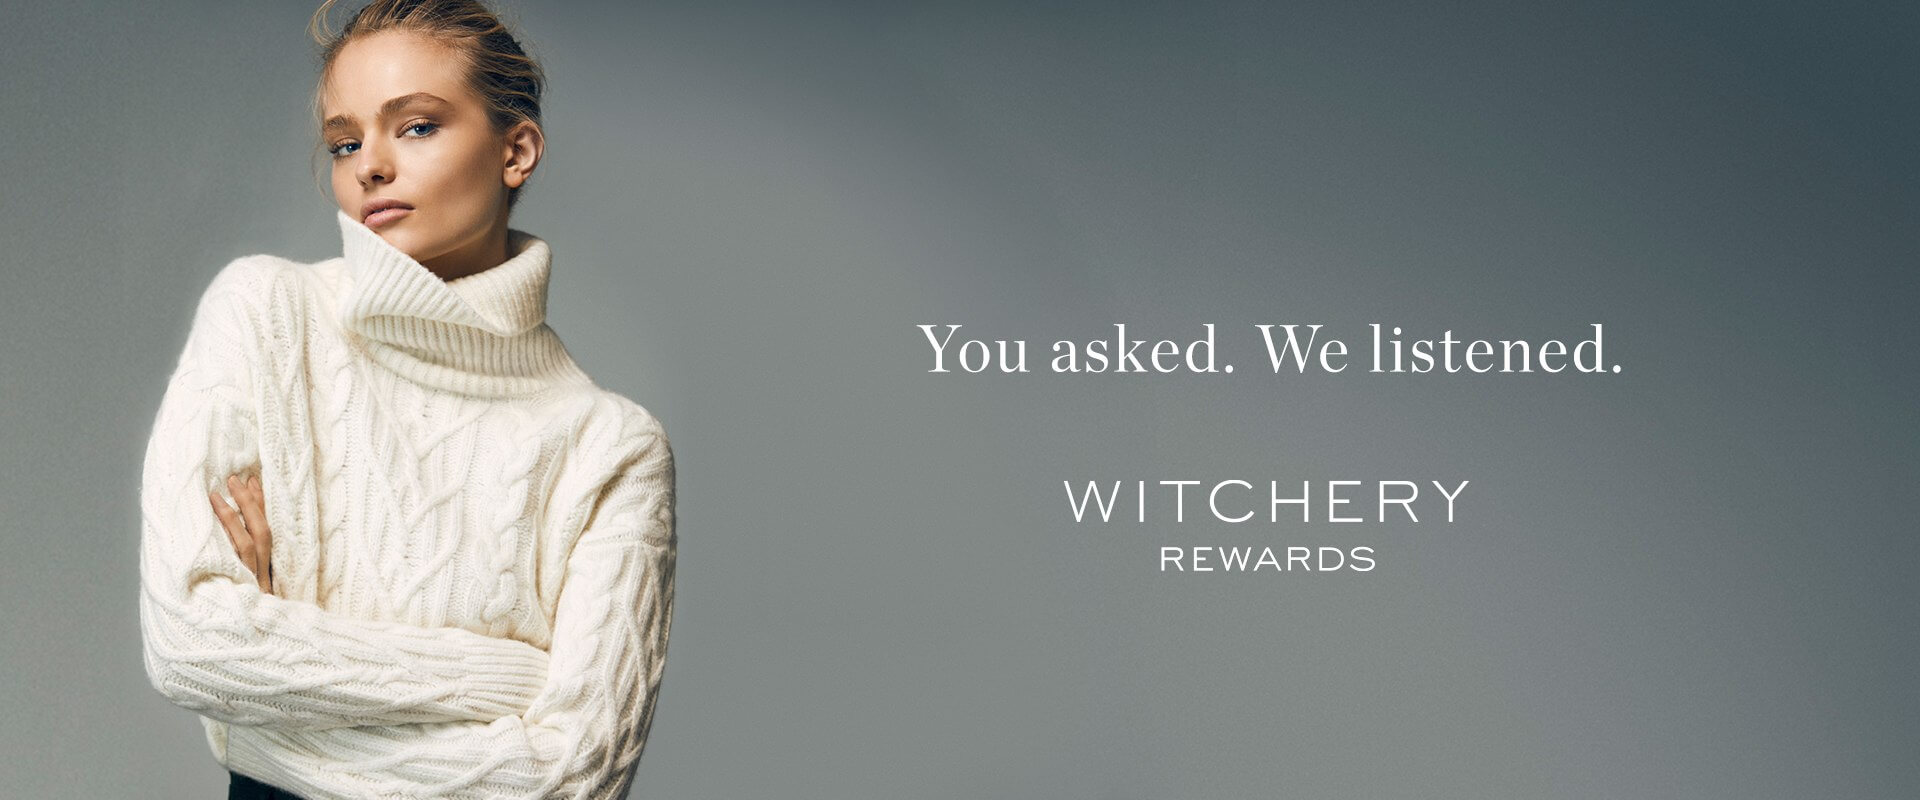 witchery you asked we listened